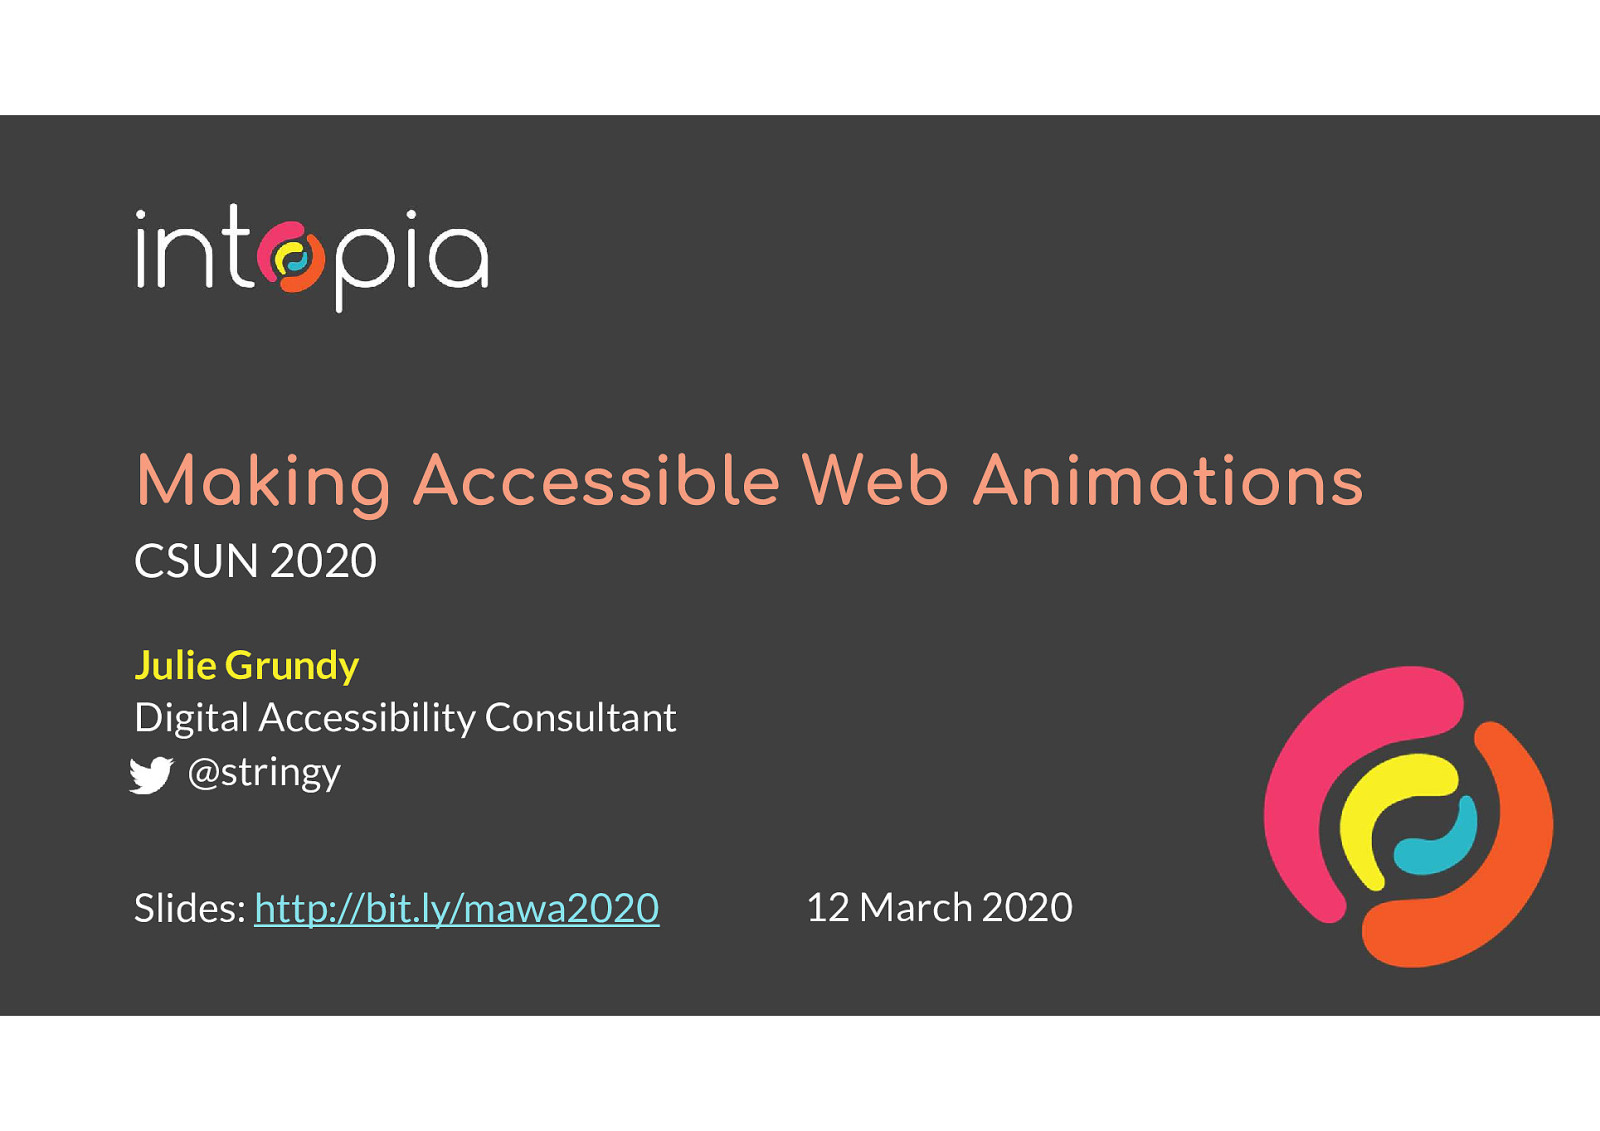 Making Accessible Web Animations